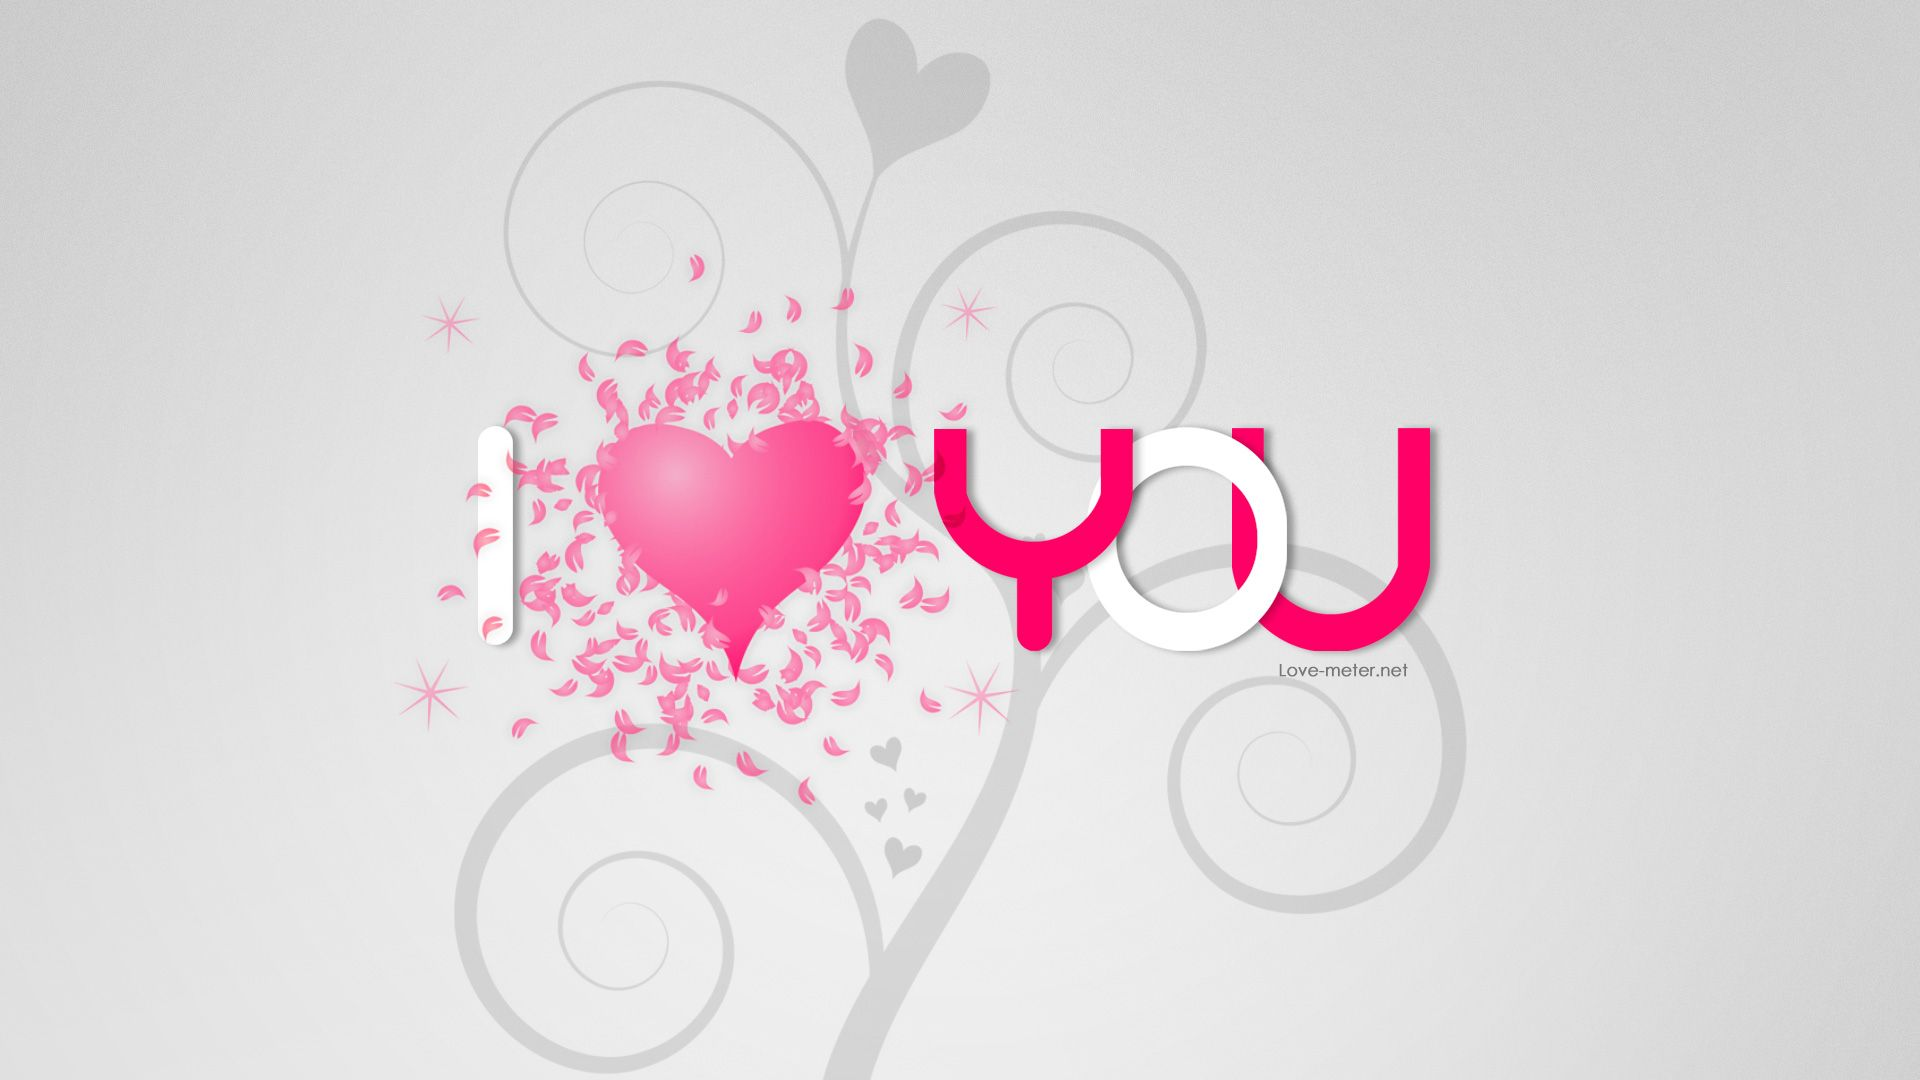 Wallpaper download i love you - Im Happy Because I Love You Hd Desktop Wallpaper High Definition 1920 1080 Wallpapers